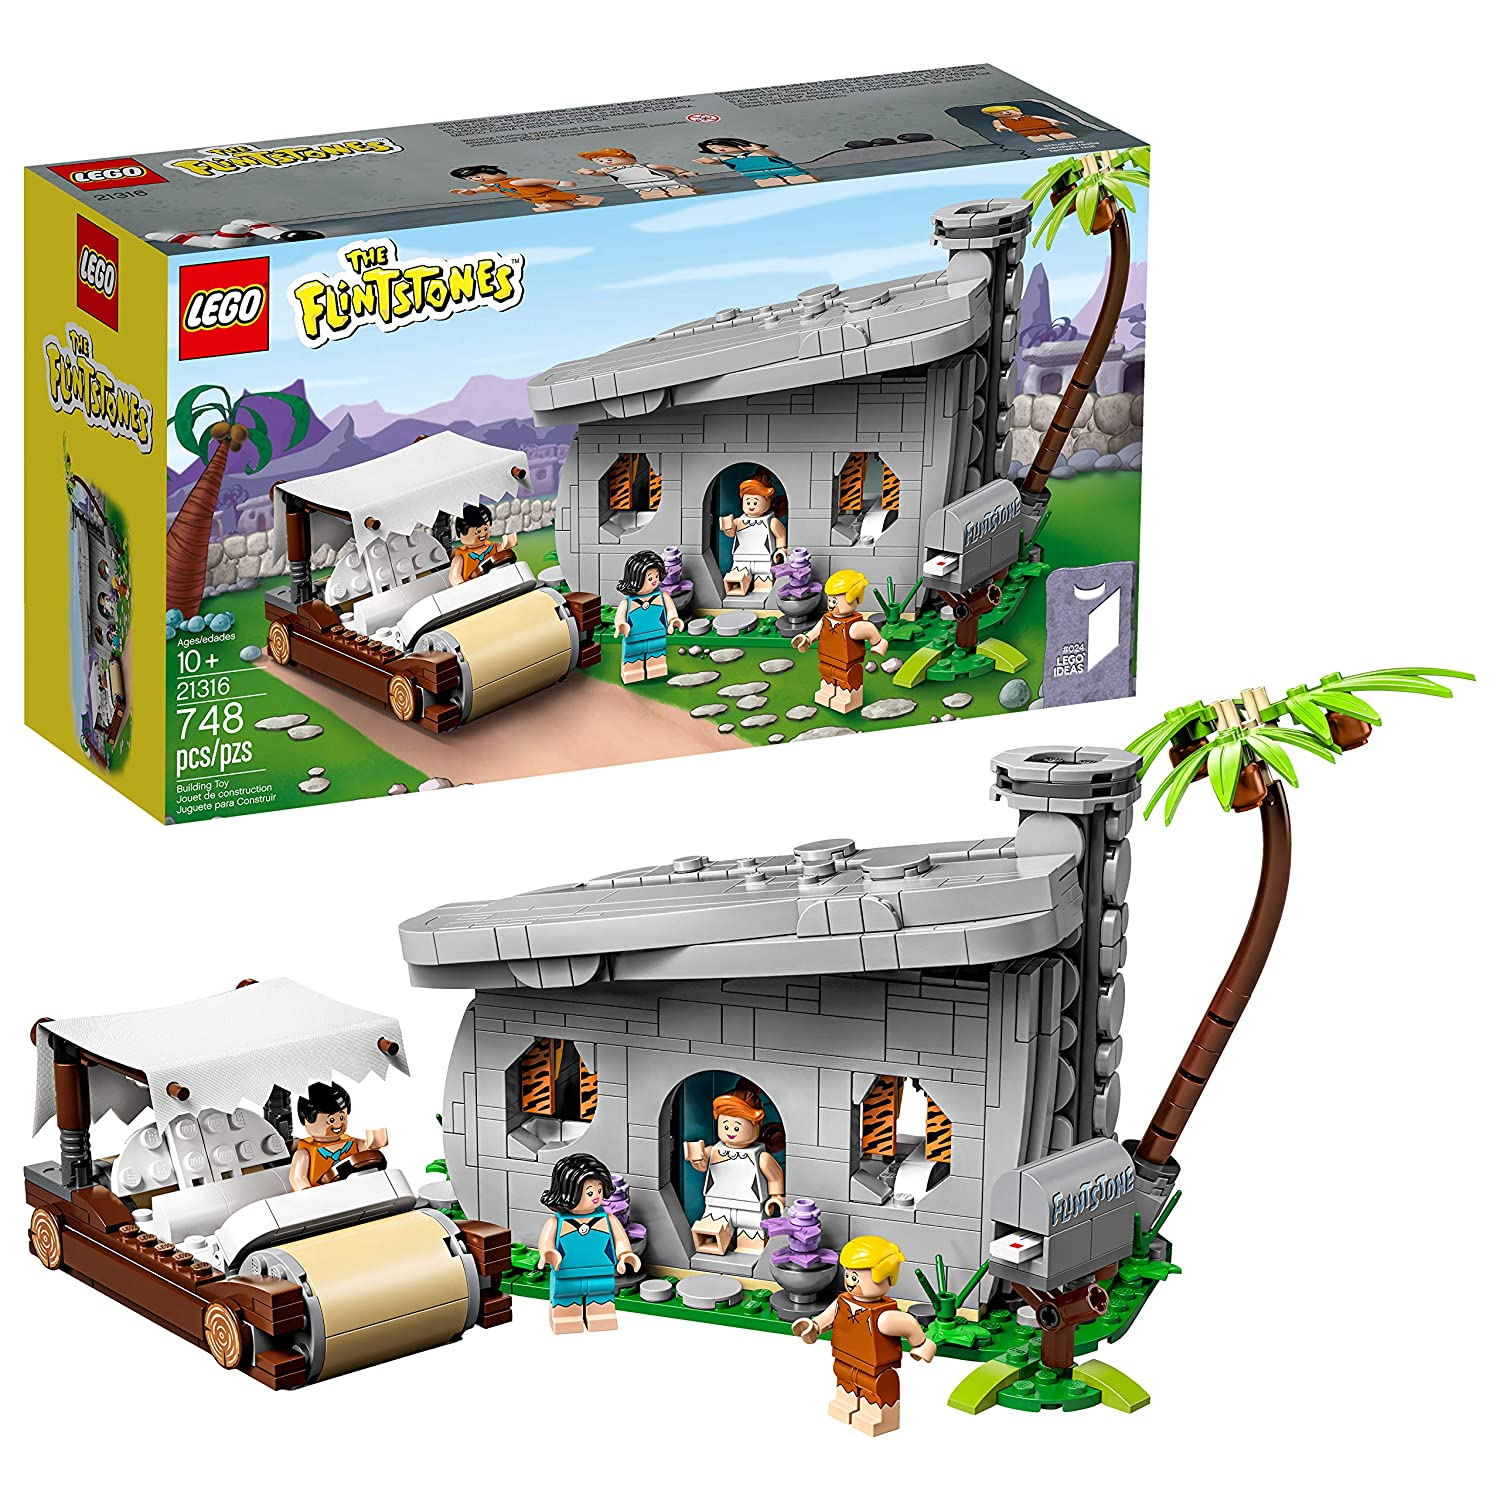 LEGO Ideas 21316 The Flintstones Building Kit, New 2019 (748 Pieces)